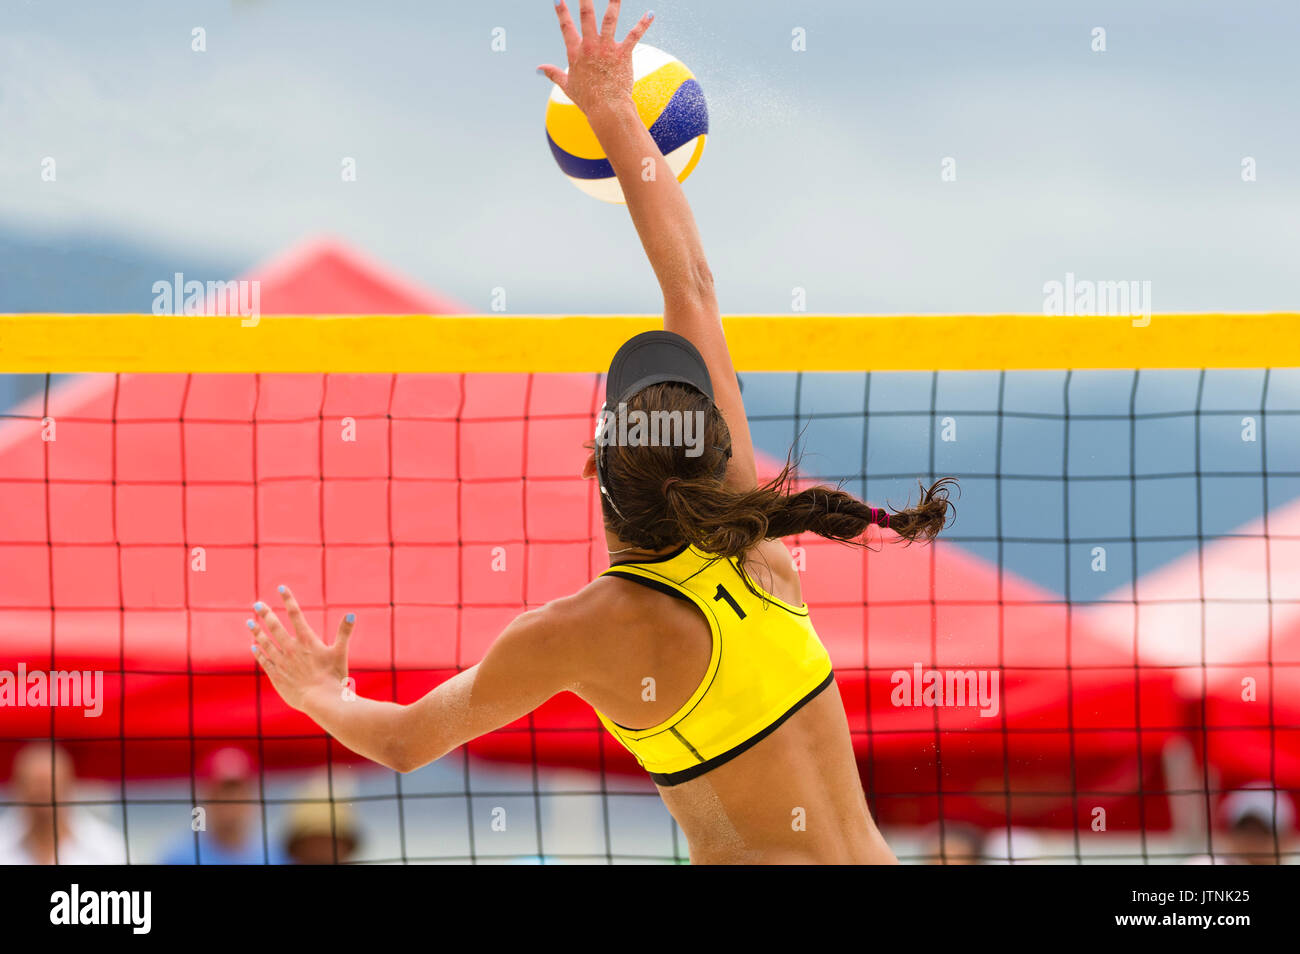 Volleyball beach player is a female beach volleyball player jumping at the net to spike the ball down. - Stock Image